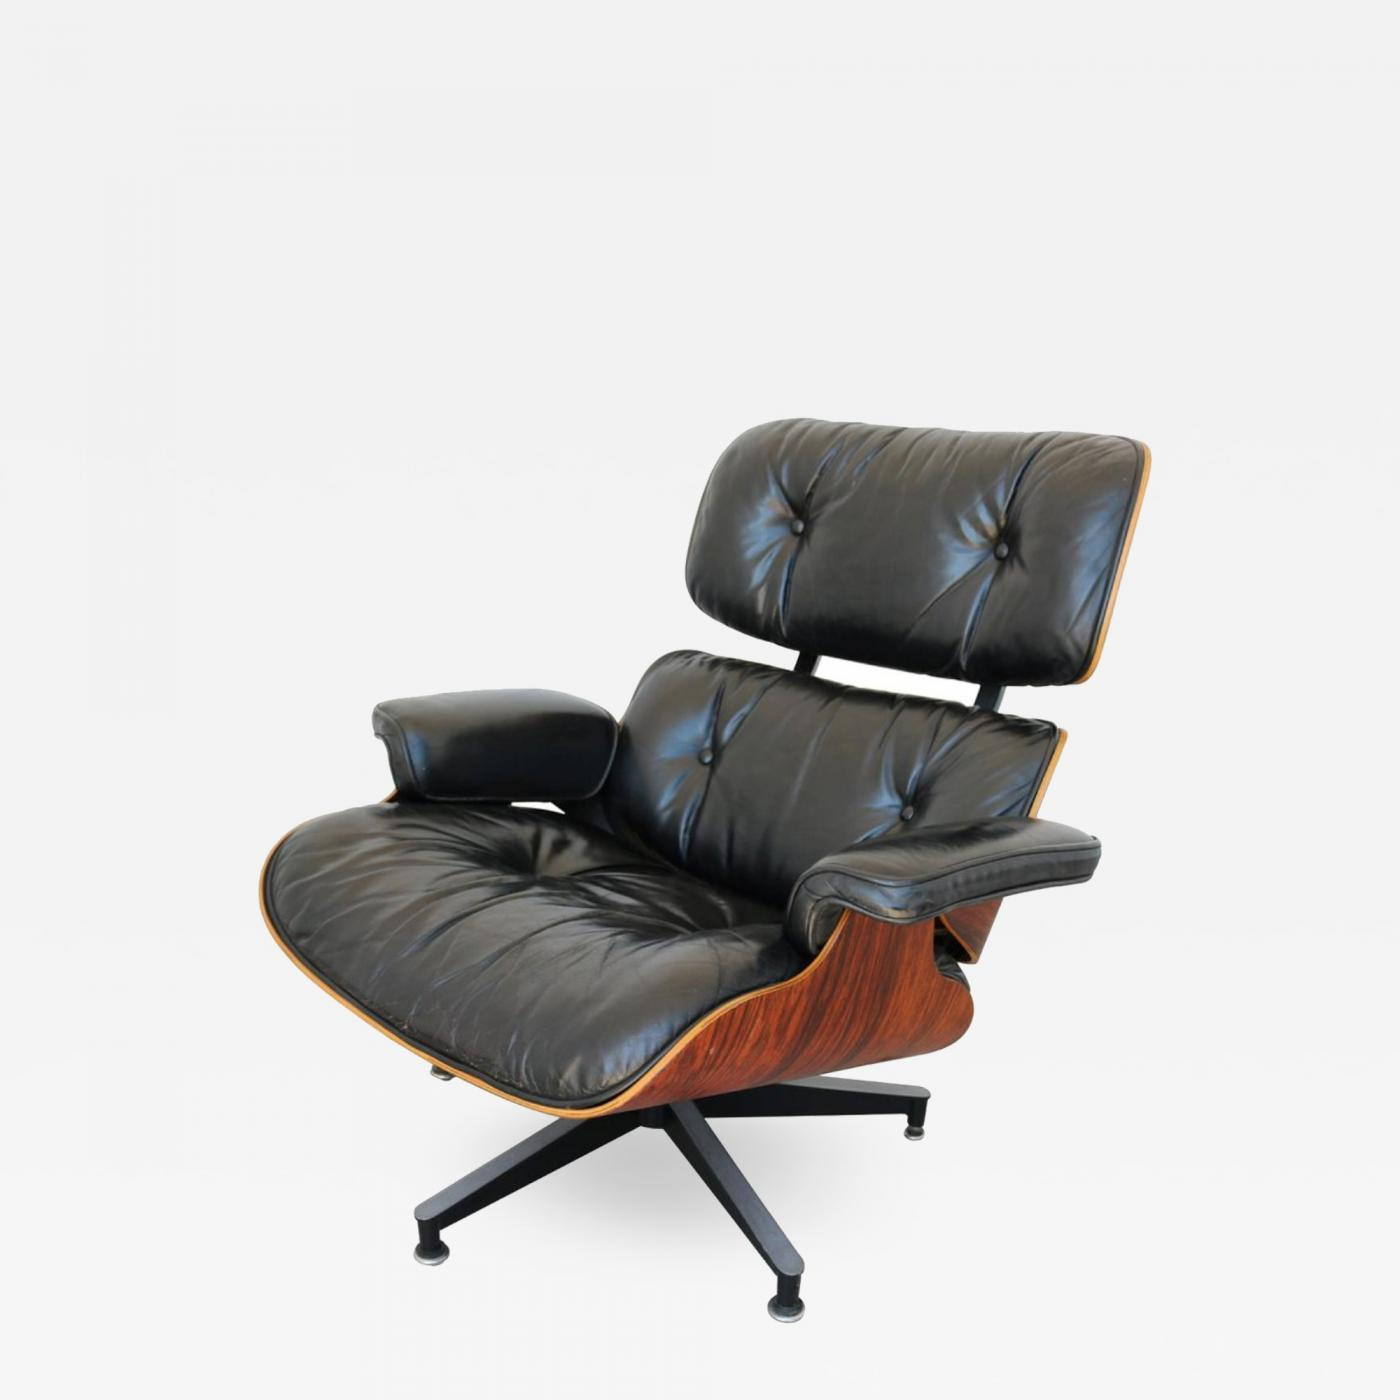 Peachy Charles Ray Eames 670 Lounge Chair By Charles And Ray Eames For Herman Miller Cjindustries Chair Design For Home Cjindustriesco